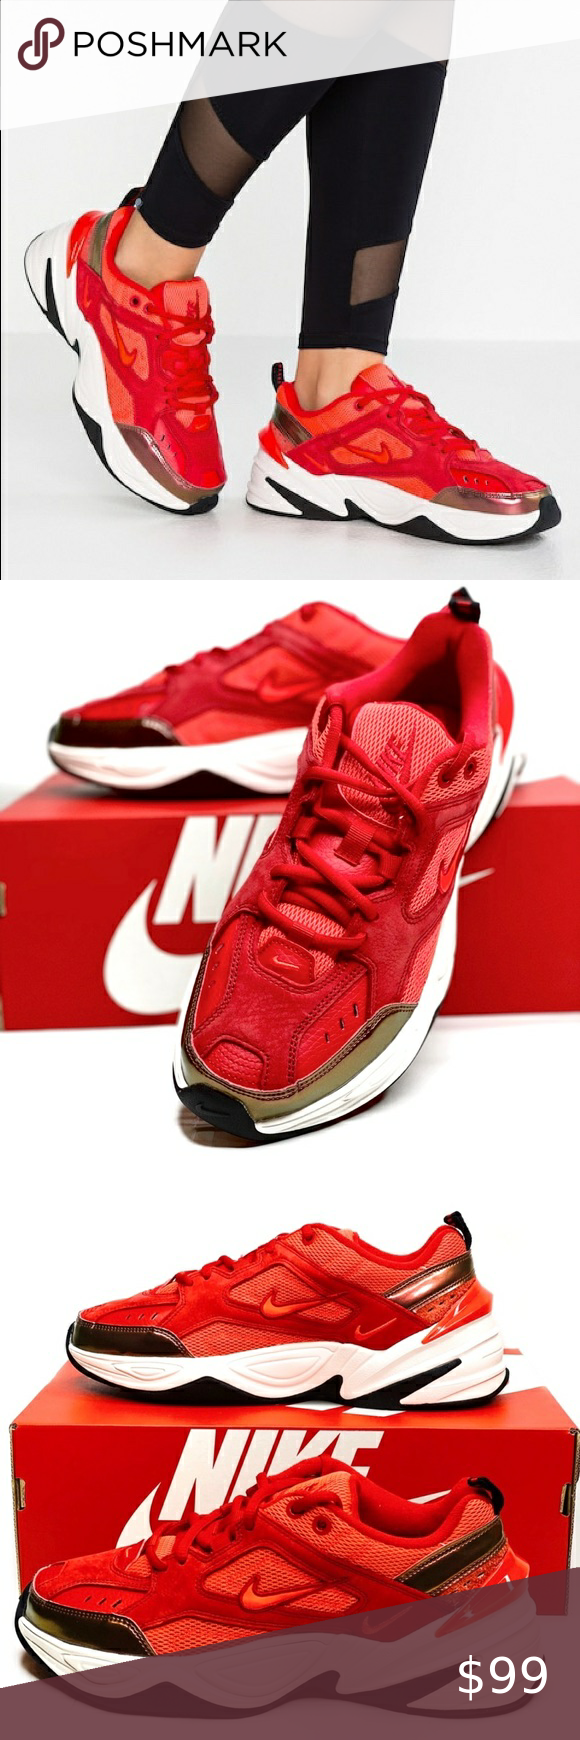 Nwt Nike M2k Tekno Red Sneakers Nwt Nike M2k Tekno Size Women S 8 Color University Red Crimson Brand New In Box Dist Red Sneakers Nike Womens Shoes Sneakers